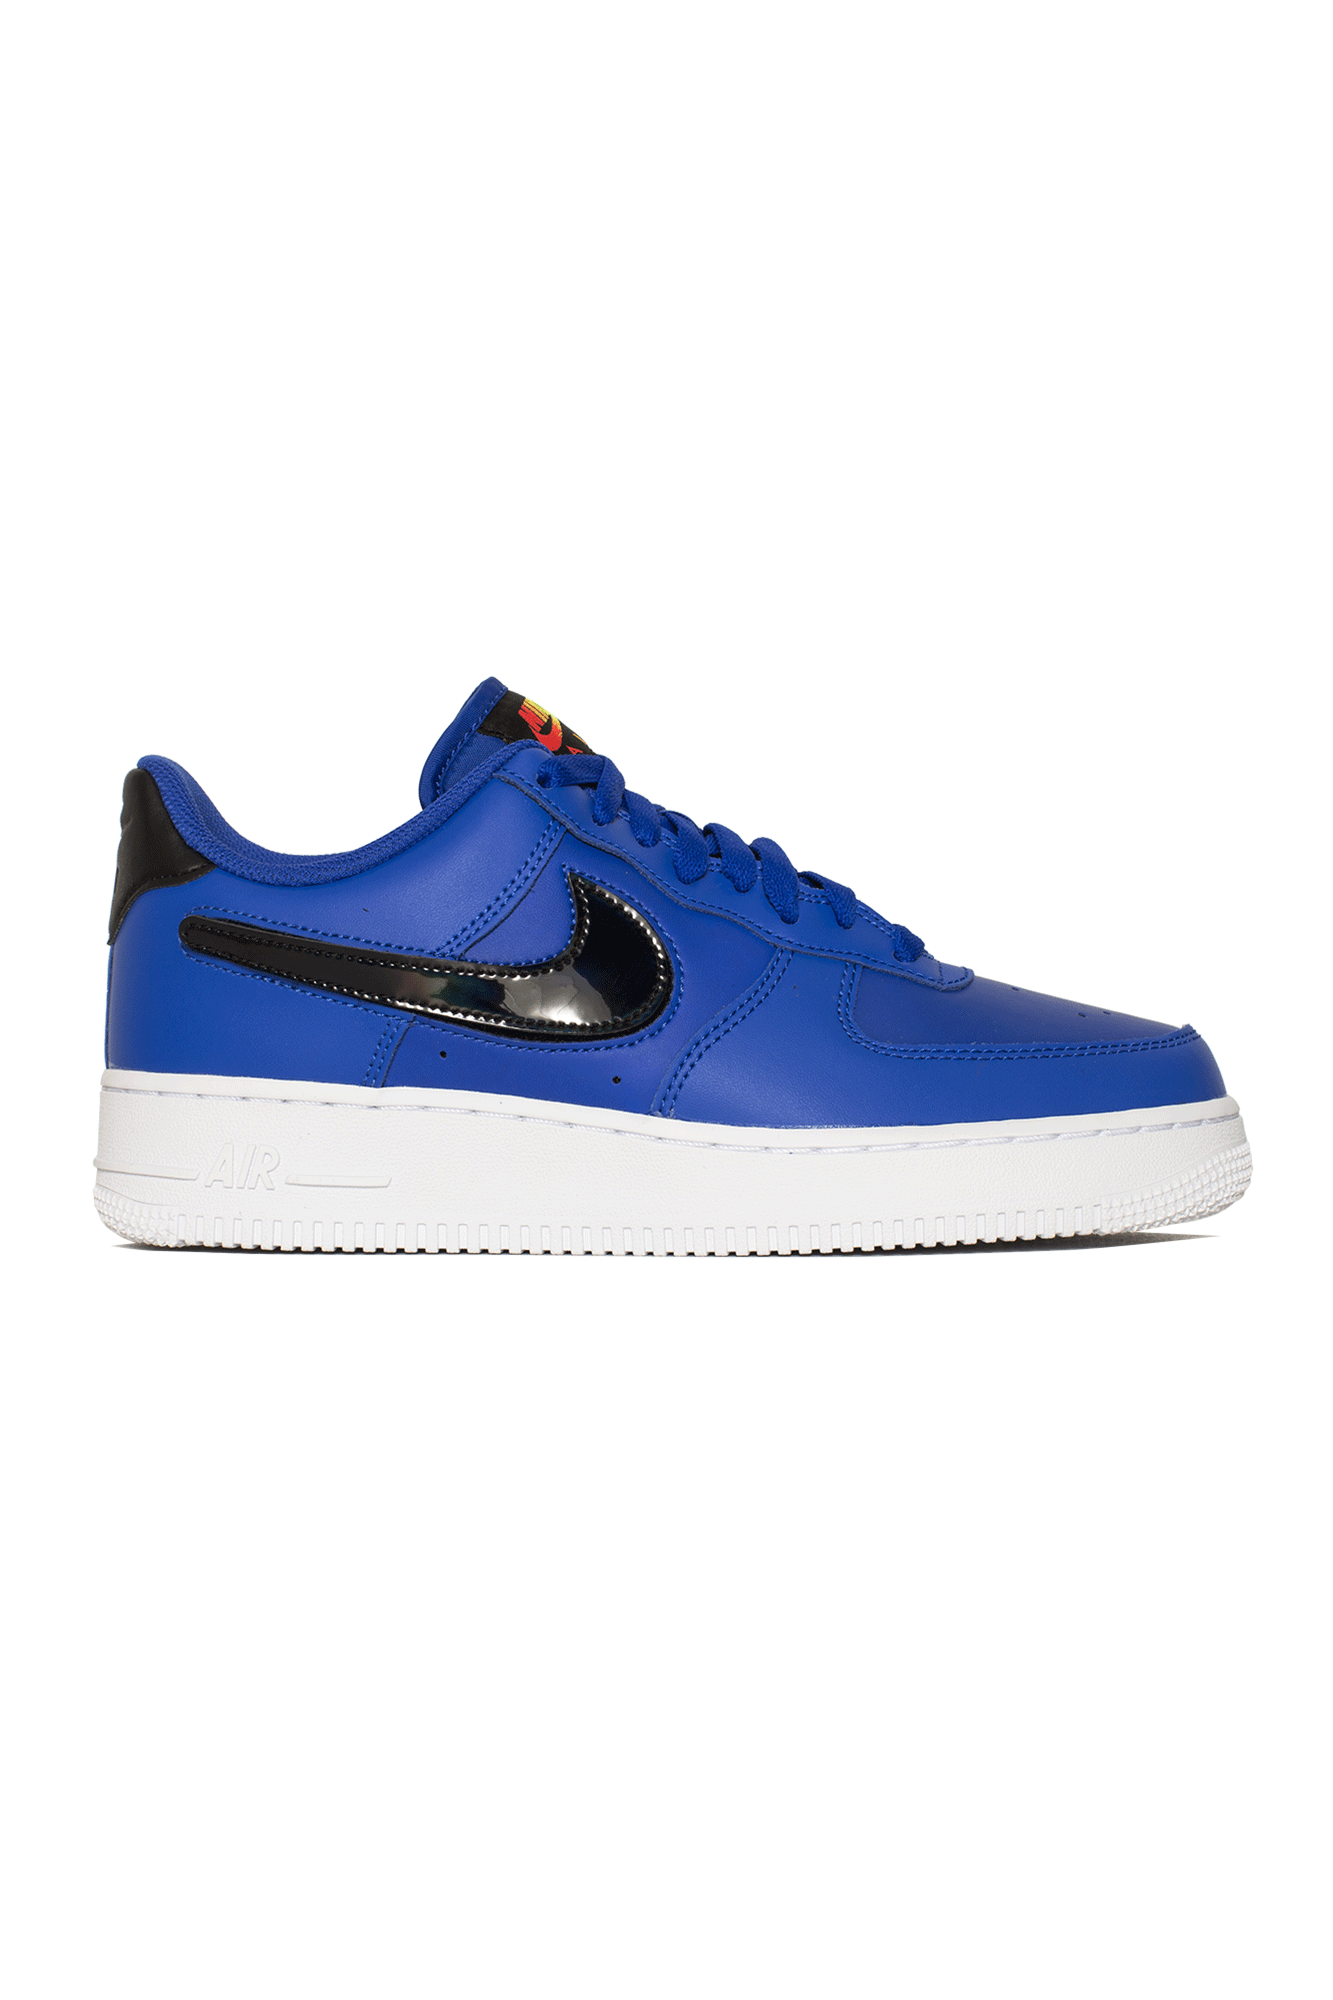 AIR FORCE 1 '07 LV8 3 Blu